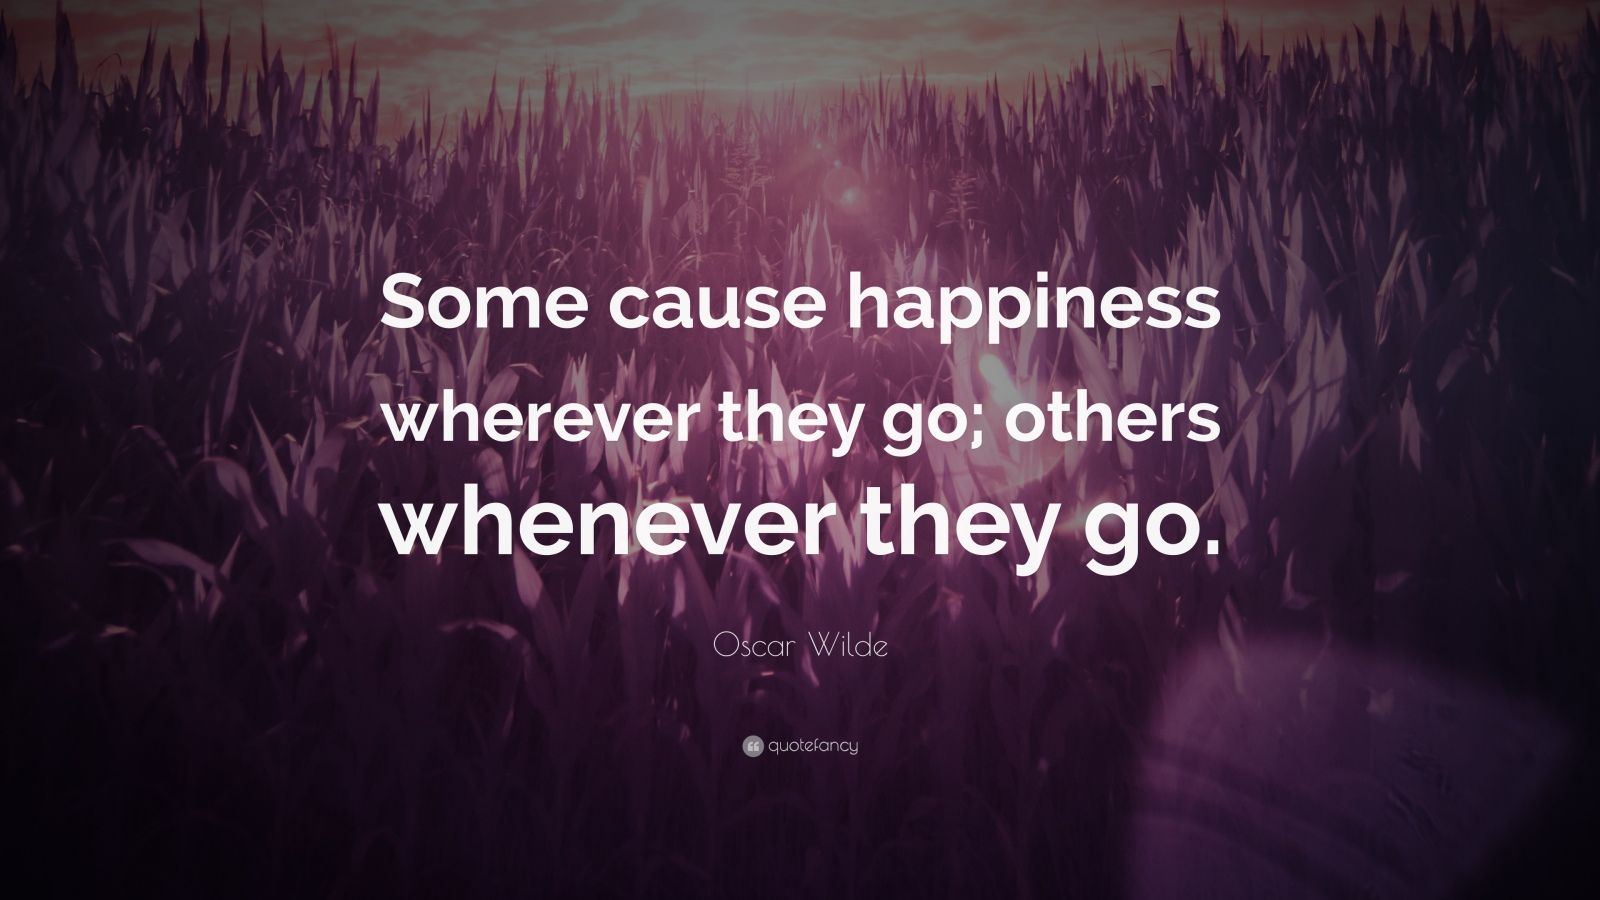 Happiness Quotes (50 wallpapers) - Quotefancy